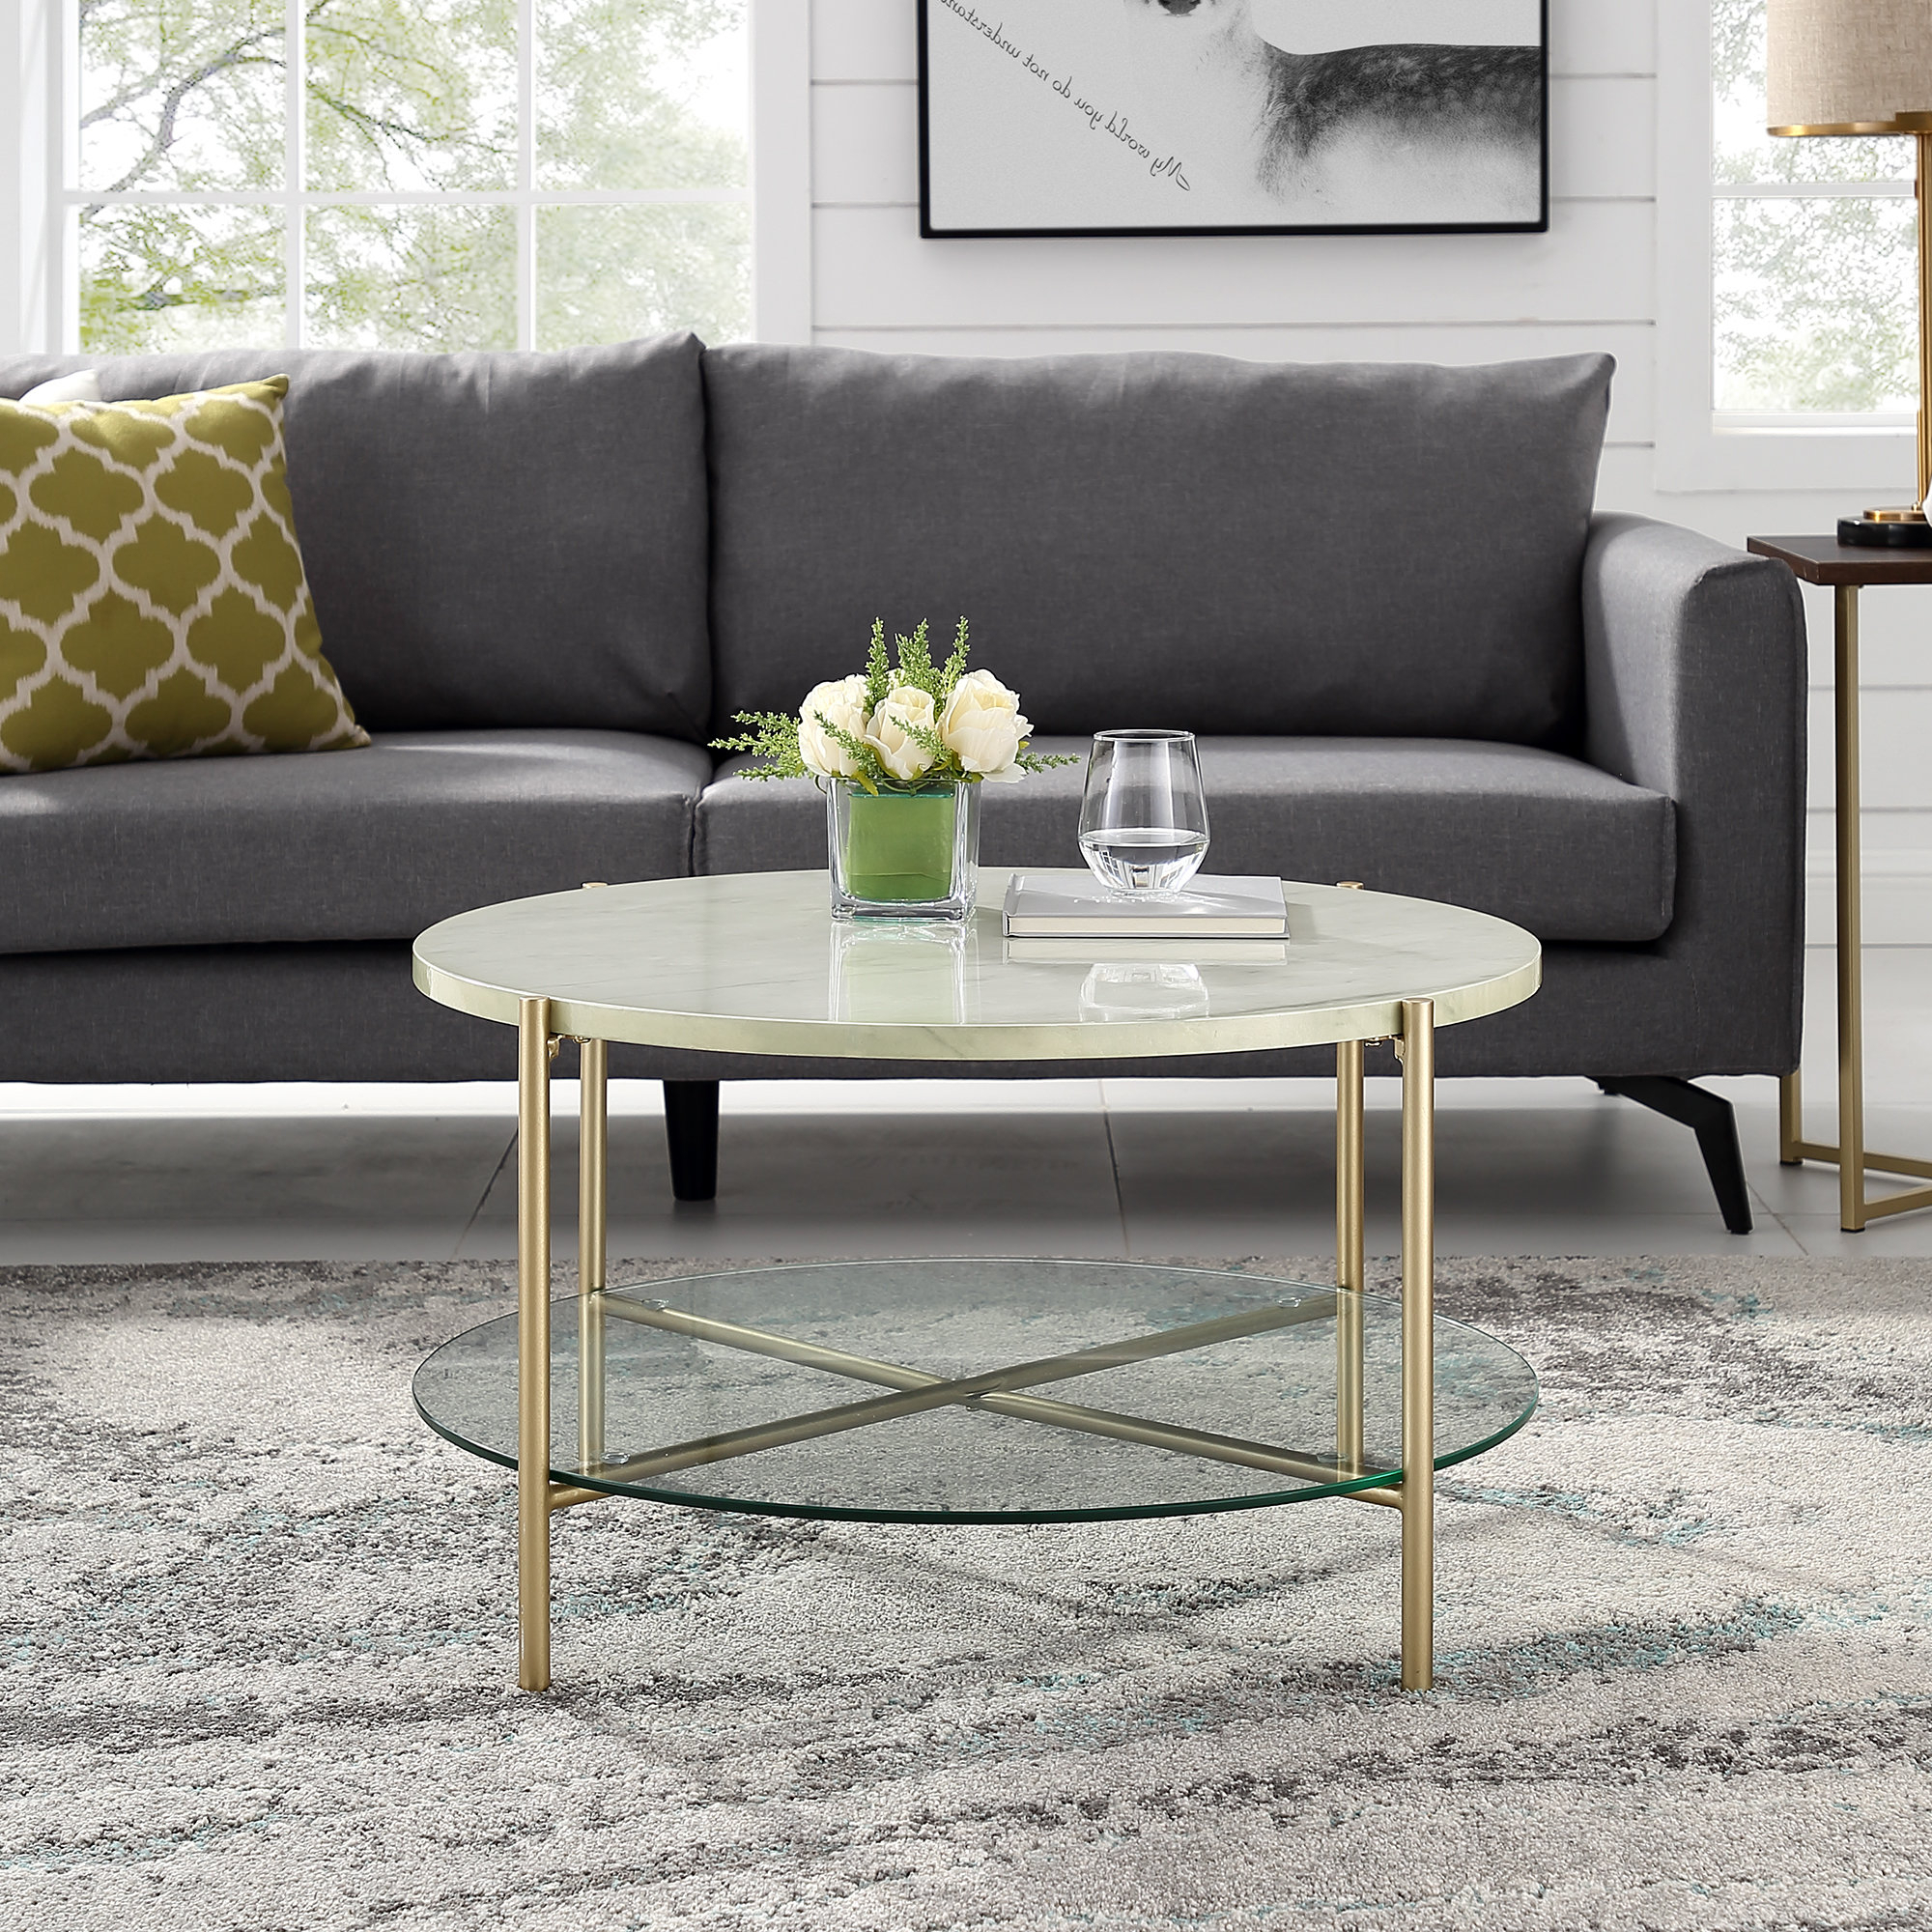 Wayfair Regarding Fashionable Elke Marble Console Tables With Polished Aluminum Base (View 20 of 20)